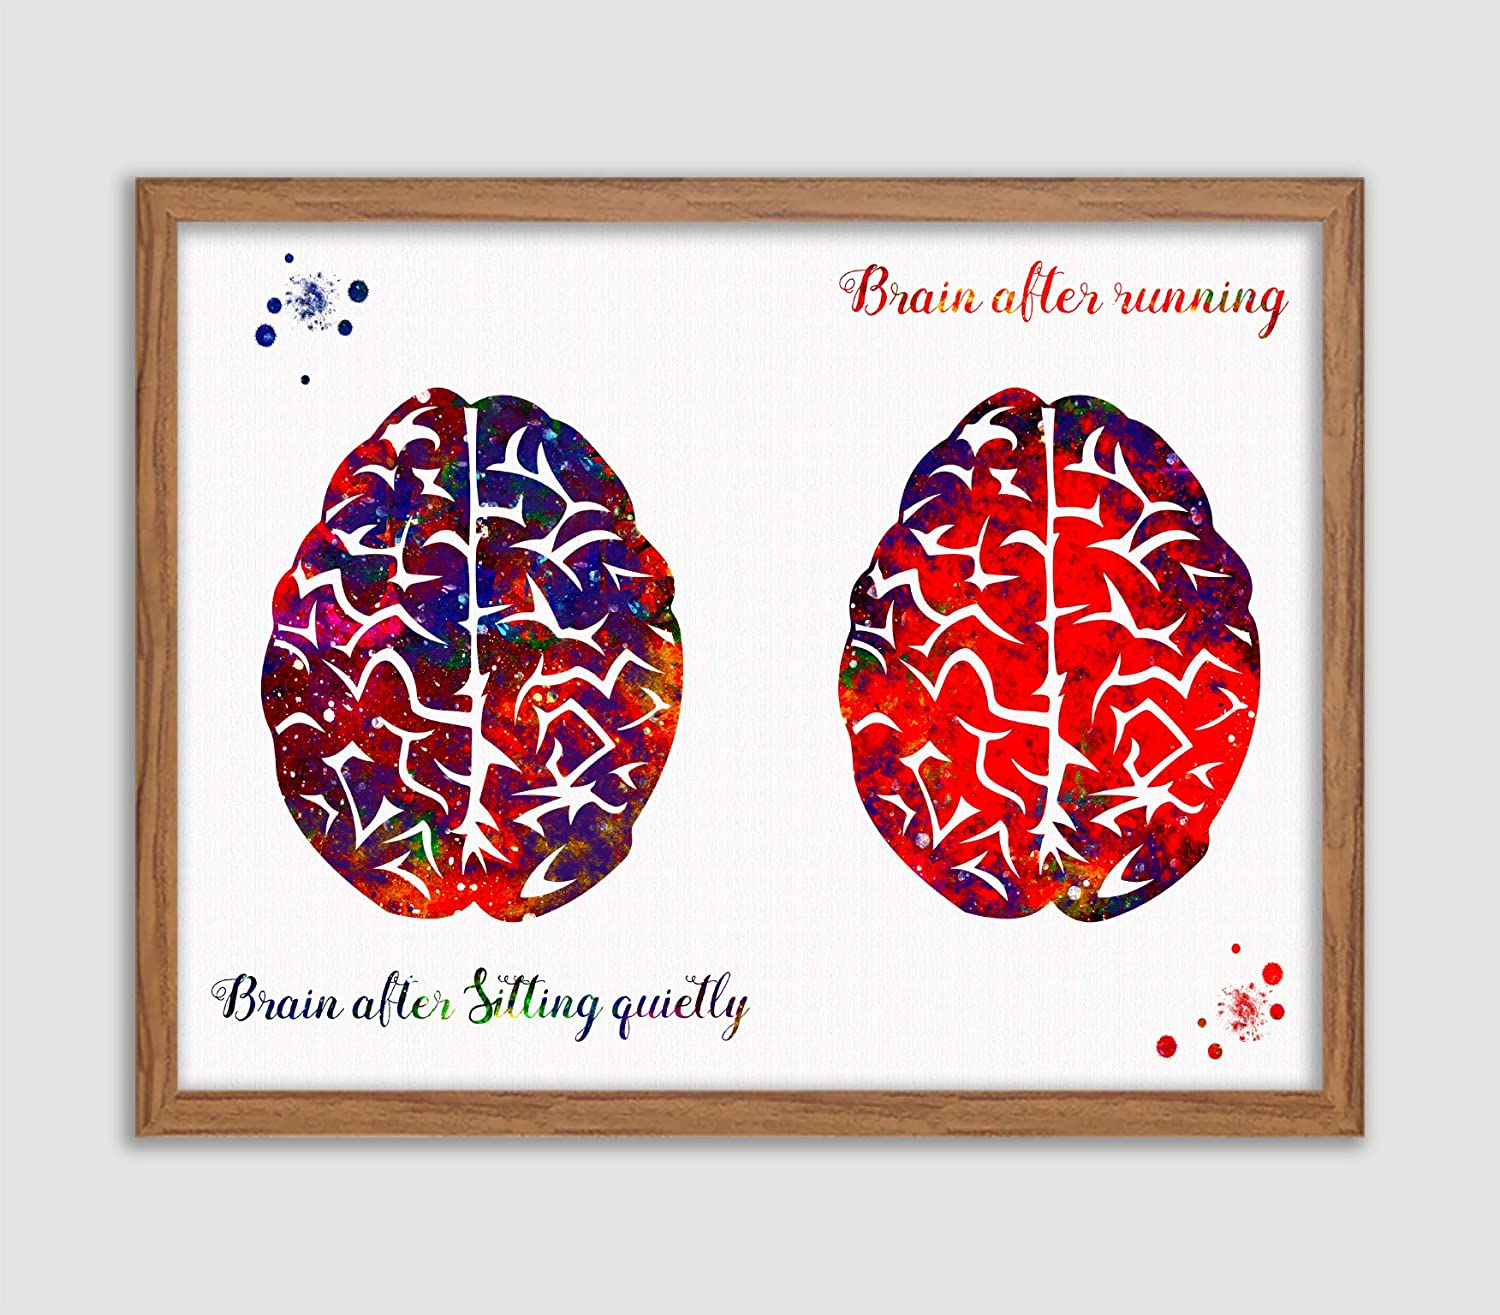 Runner's Brain Watercolor Print Brain After Sitting Quietly Brain After Running Quote Poster Brain And Running Sport Print House Warming Wall Art